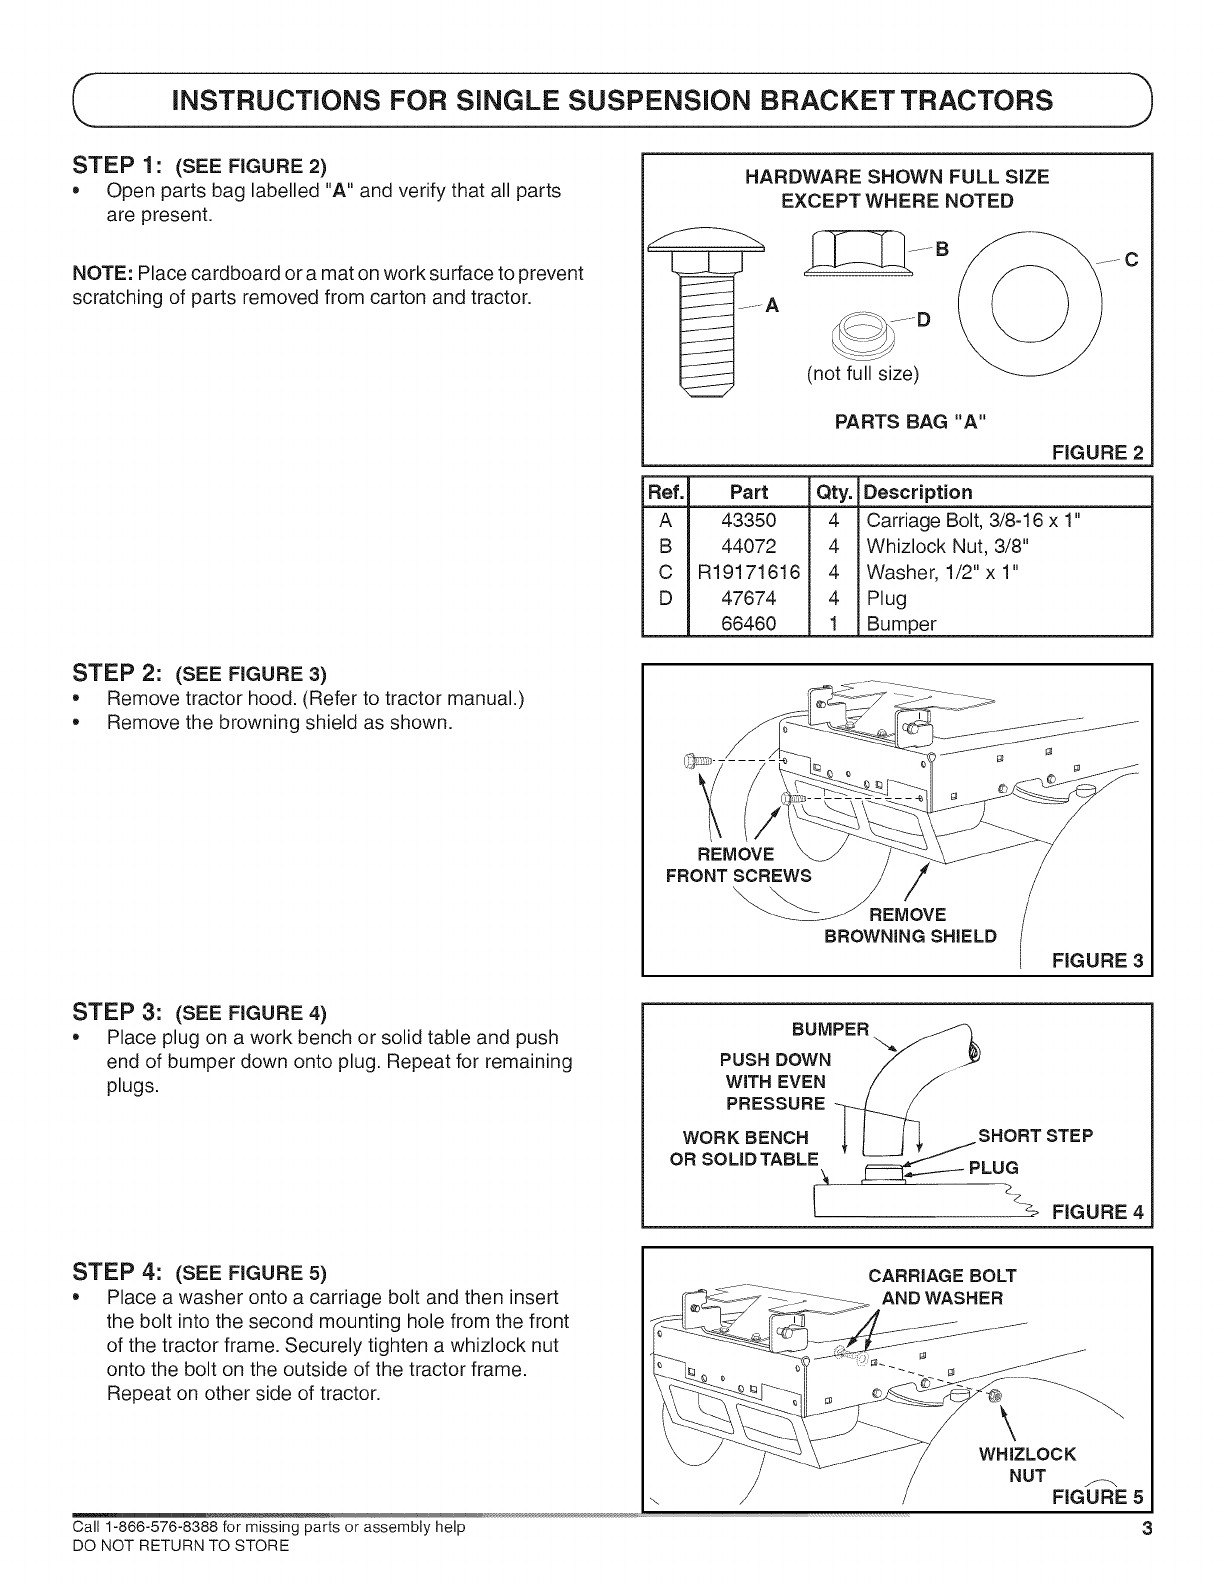 page 3 of craftsman lawn mower accessory 486 24608 user guide rh lawnandgarden manualsonline com Craftsman Chainsaw Repair Manual Craftsman Lawn Mower 917 Series